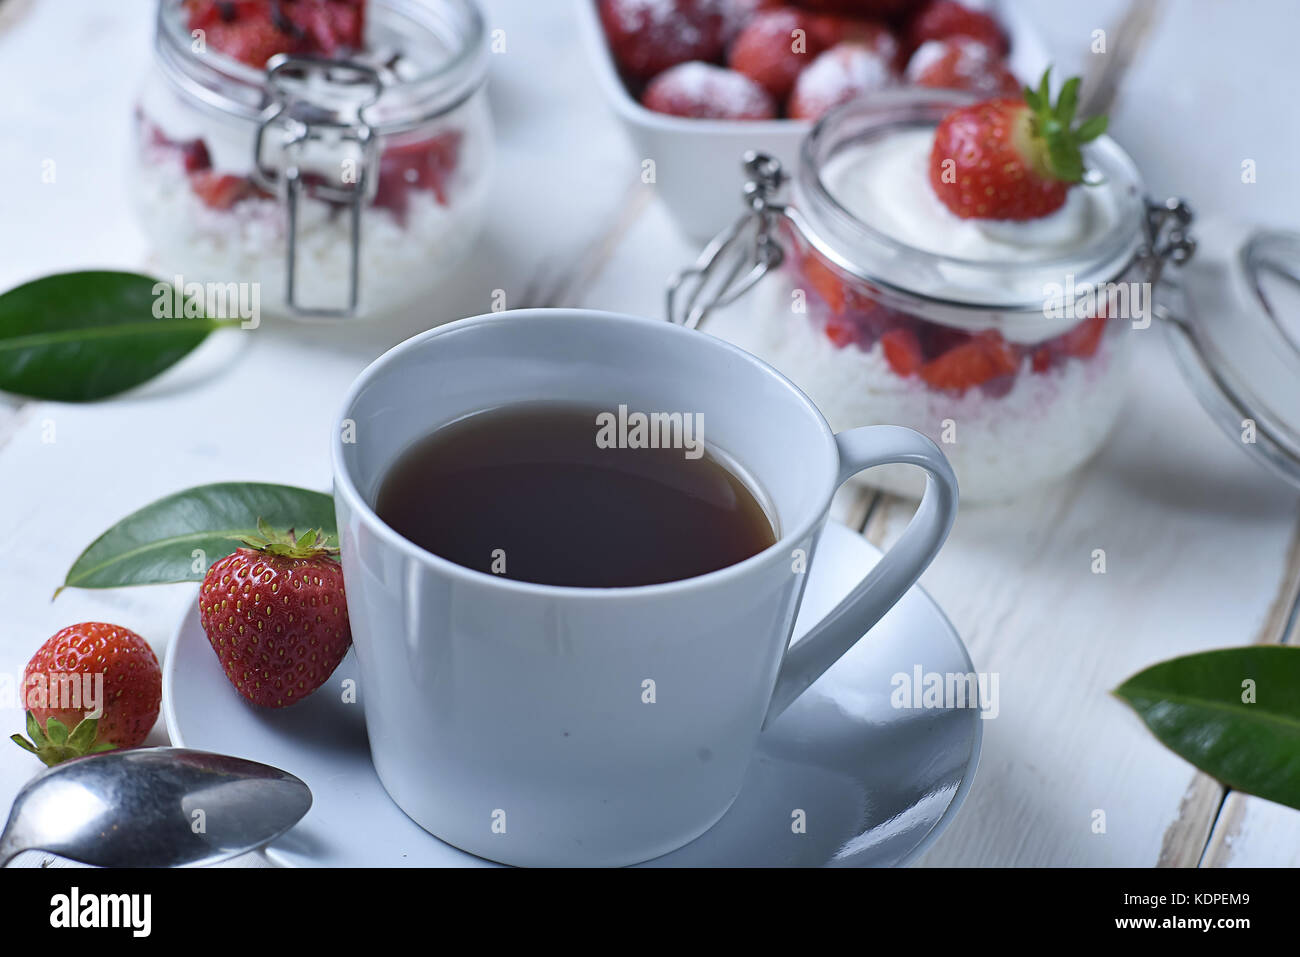 Tea and strawberry dessert Stock Photo